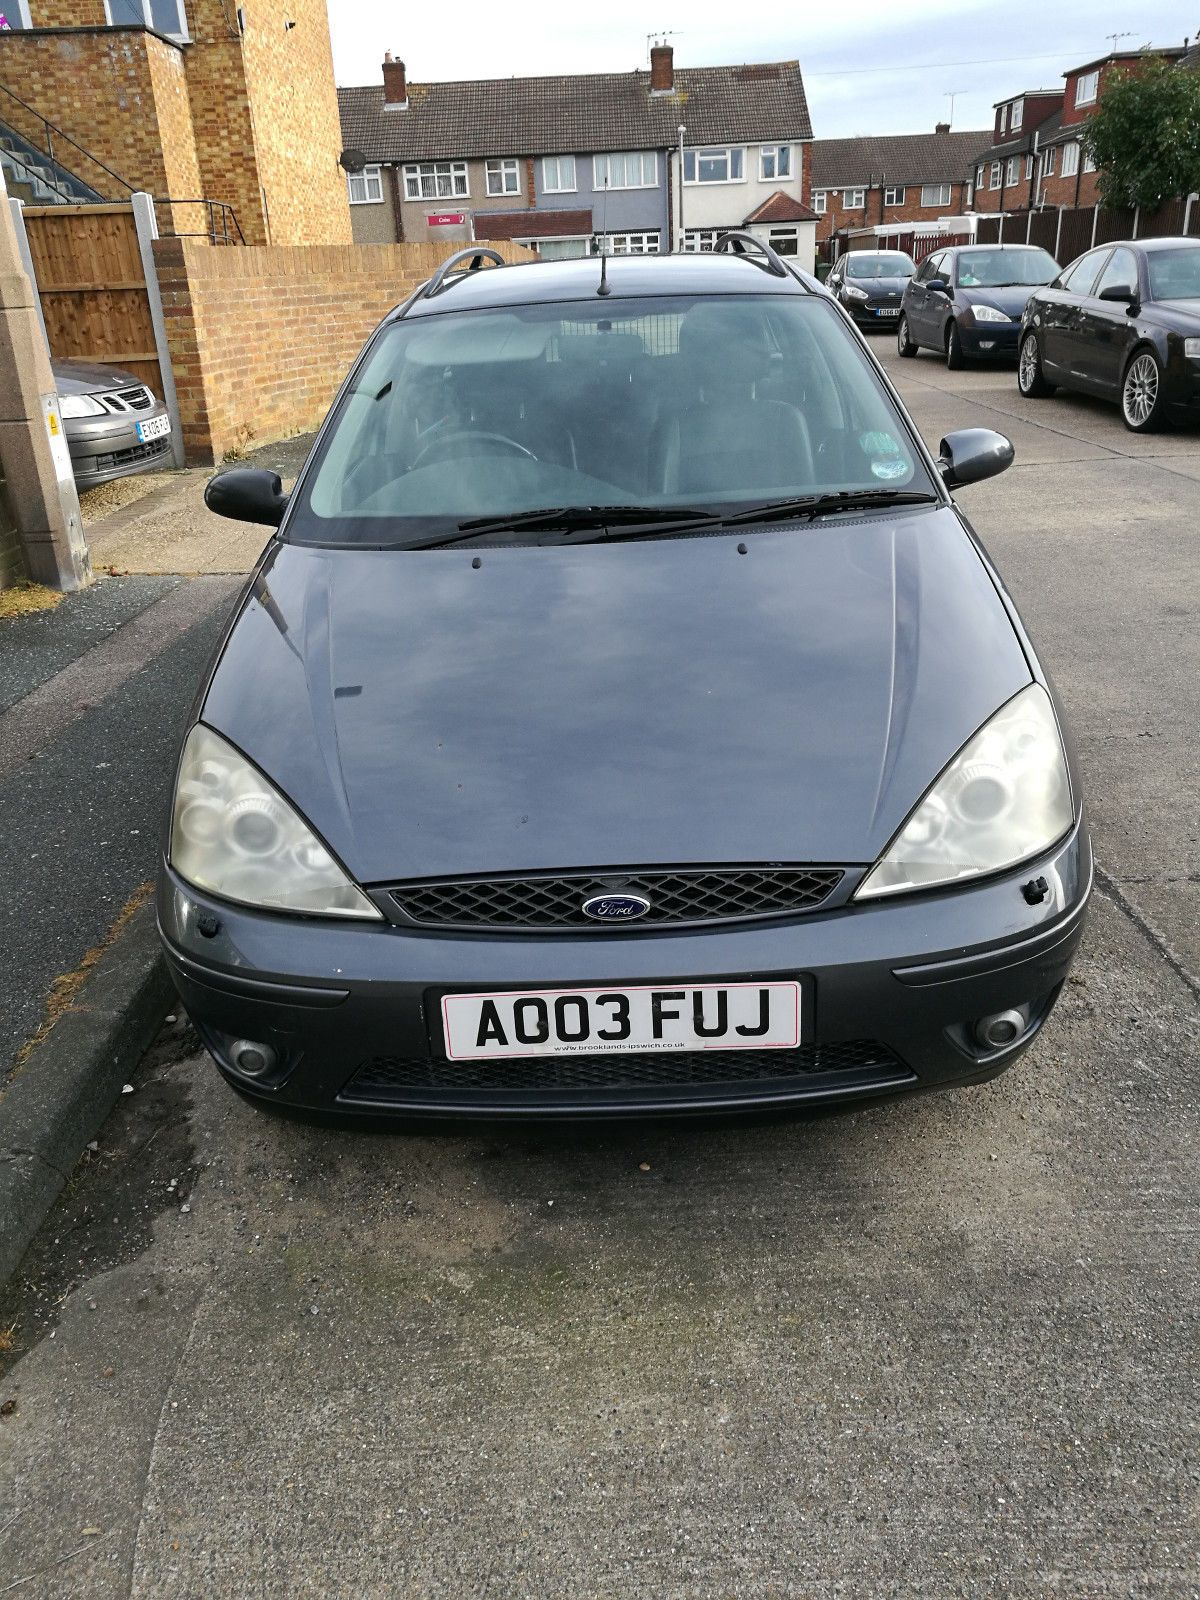 Ford Focus St170 Estate Project Needs Finishing Uk Salvage Cars